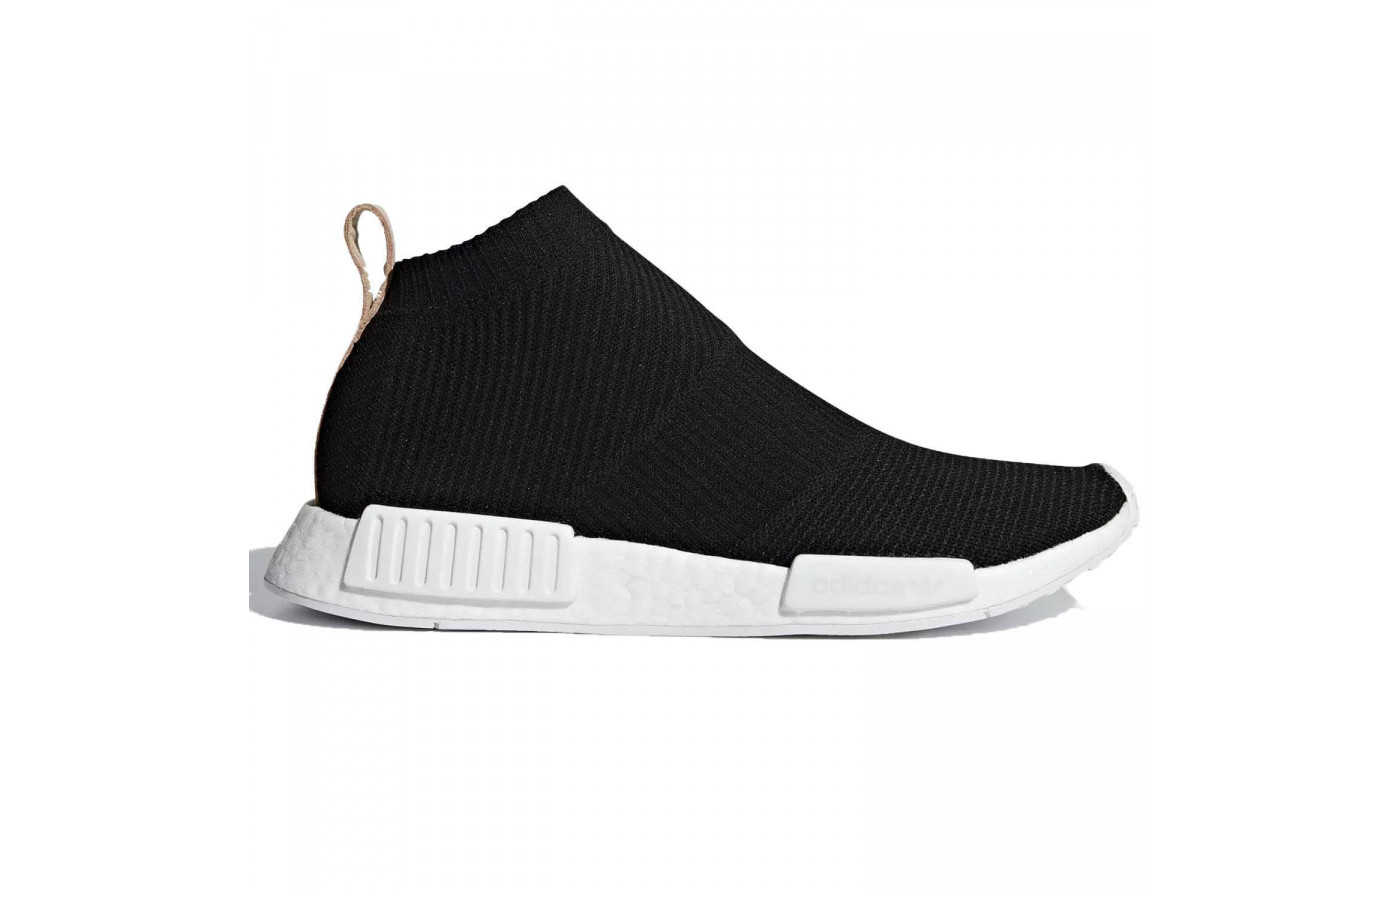 941db87ec Adidas NMD CS1 Reviewed - To Buy or Not in May 2019